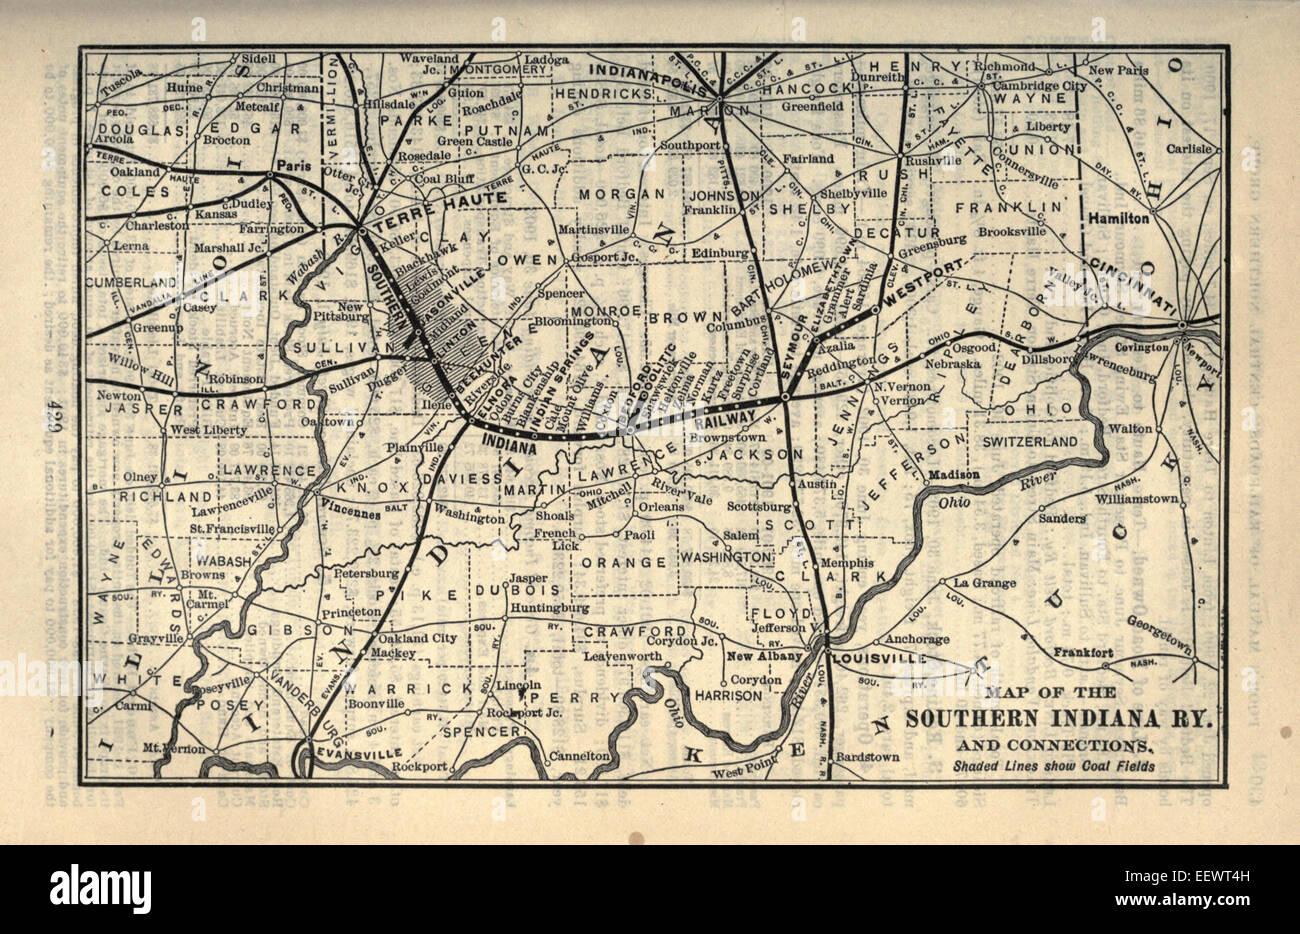 Old Map Of Indiana Stock Photos & Old Map Of Indiana Stock ...